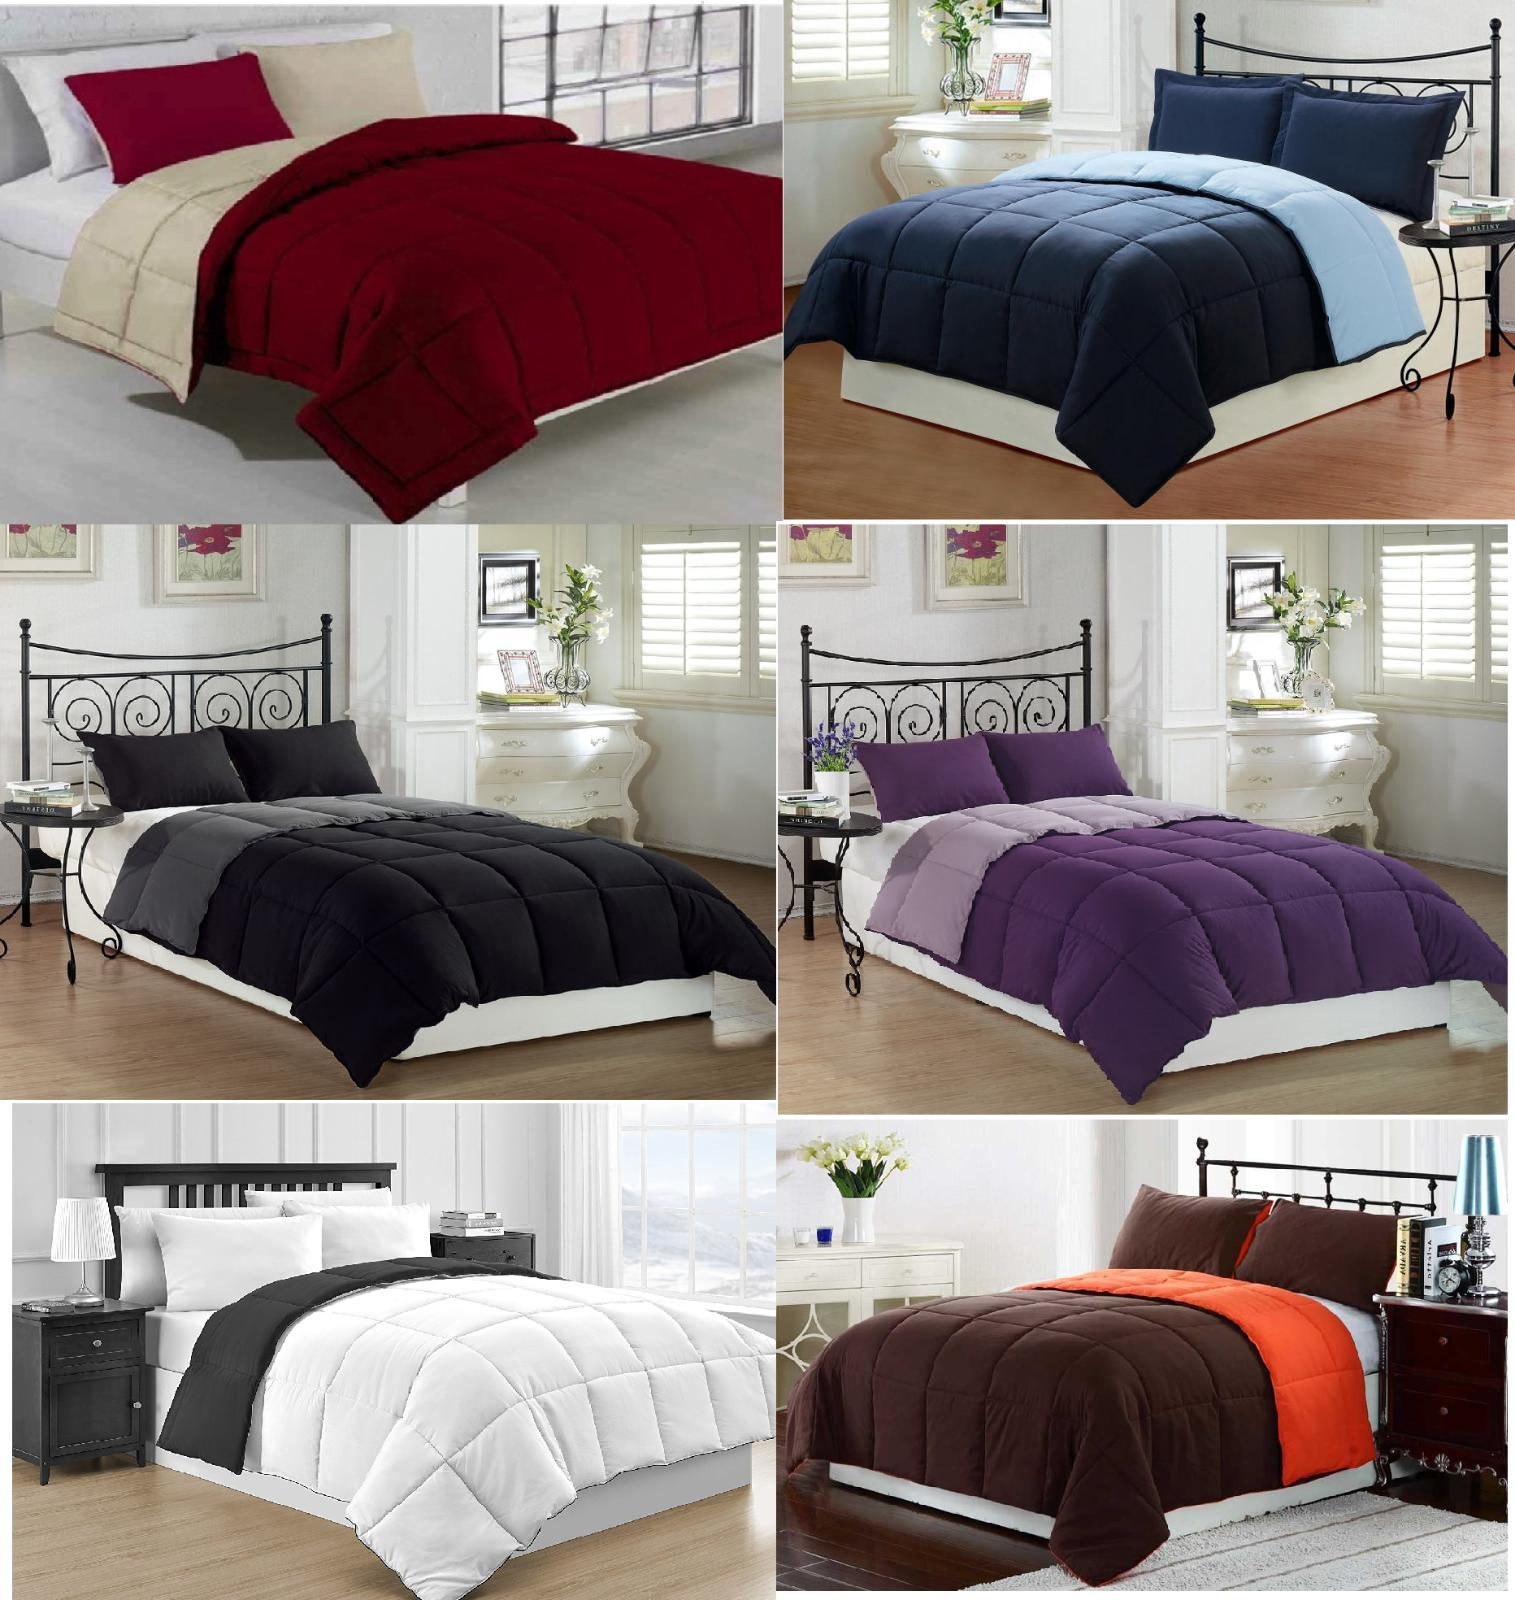 REVERSIBLE COMFORTER MICROFIBER 1 PIECE 12 DIFFERENT COLORS